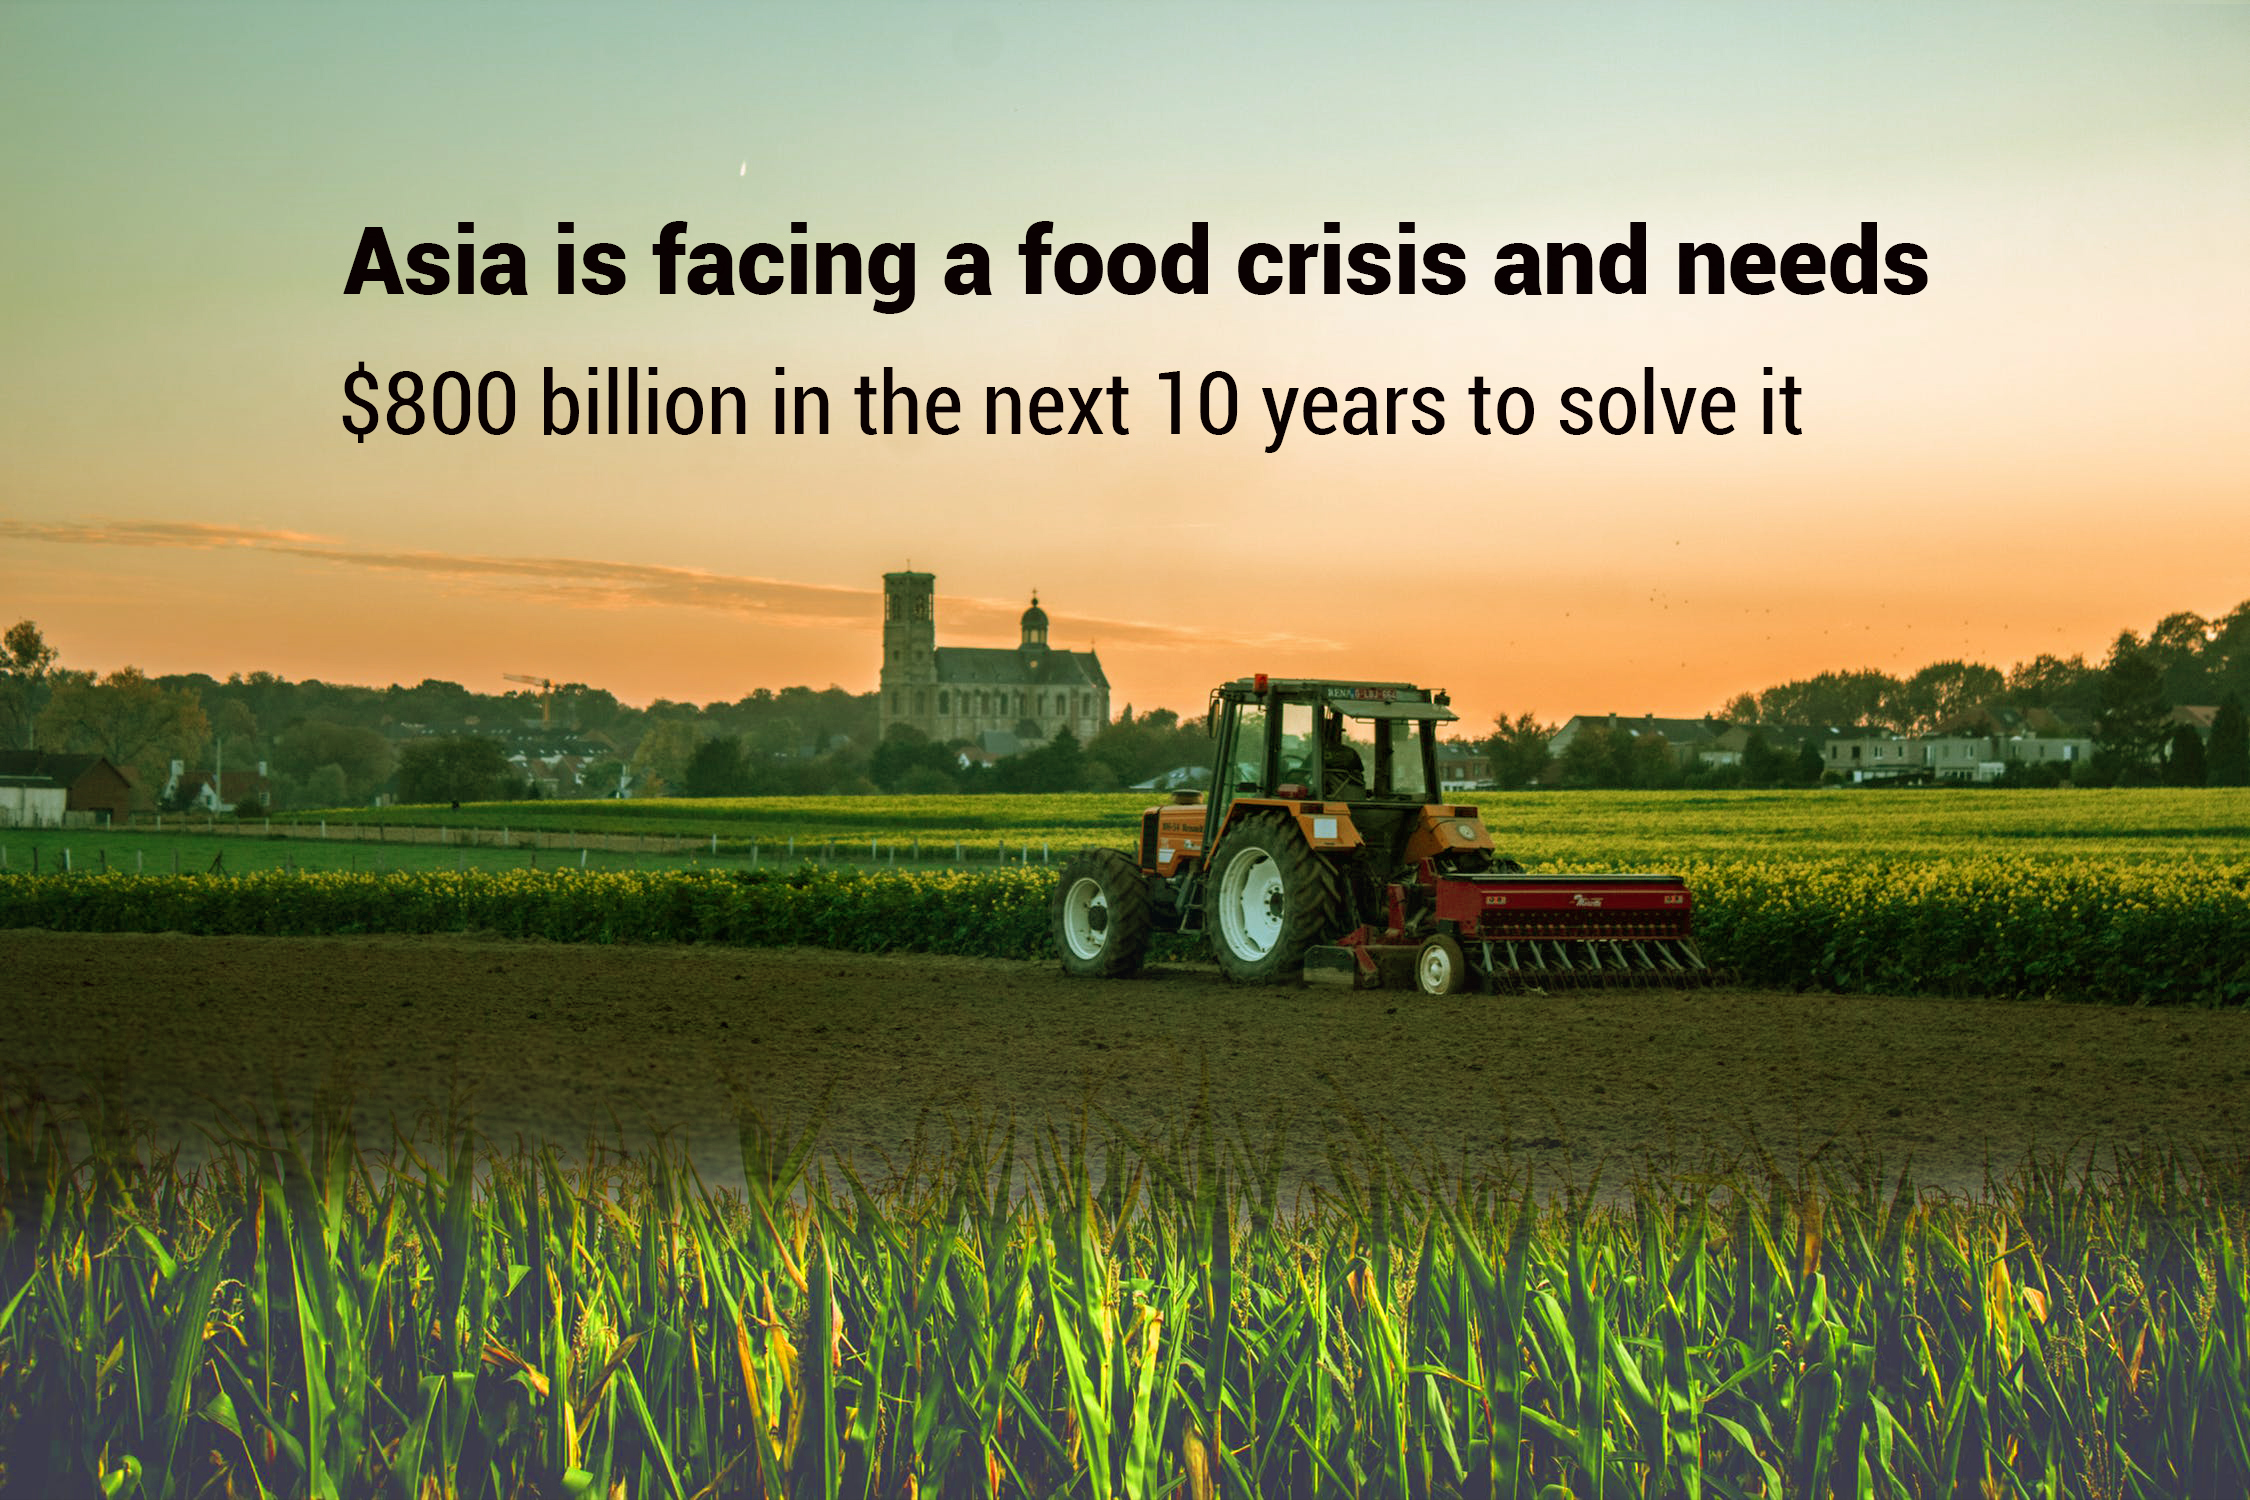 Asia unable to feed itself, needs $800 billion in the upcoming 10 years